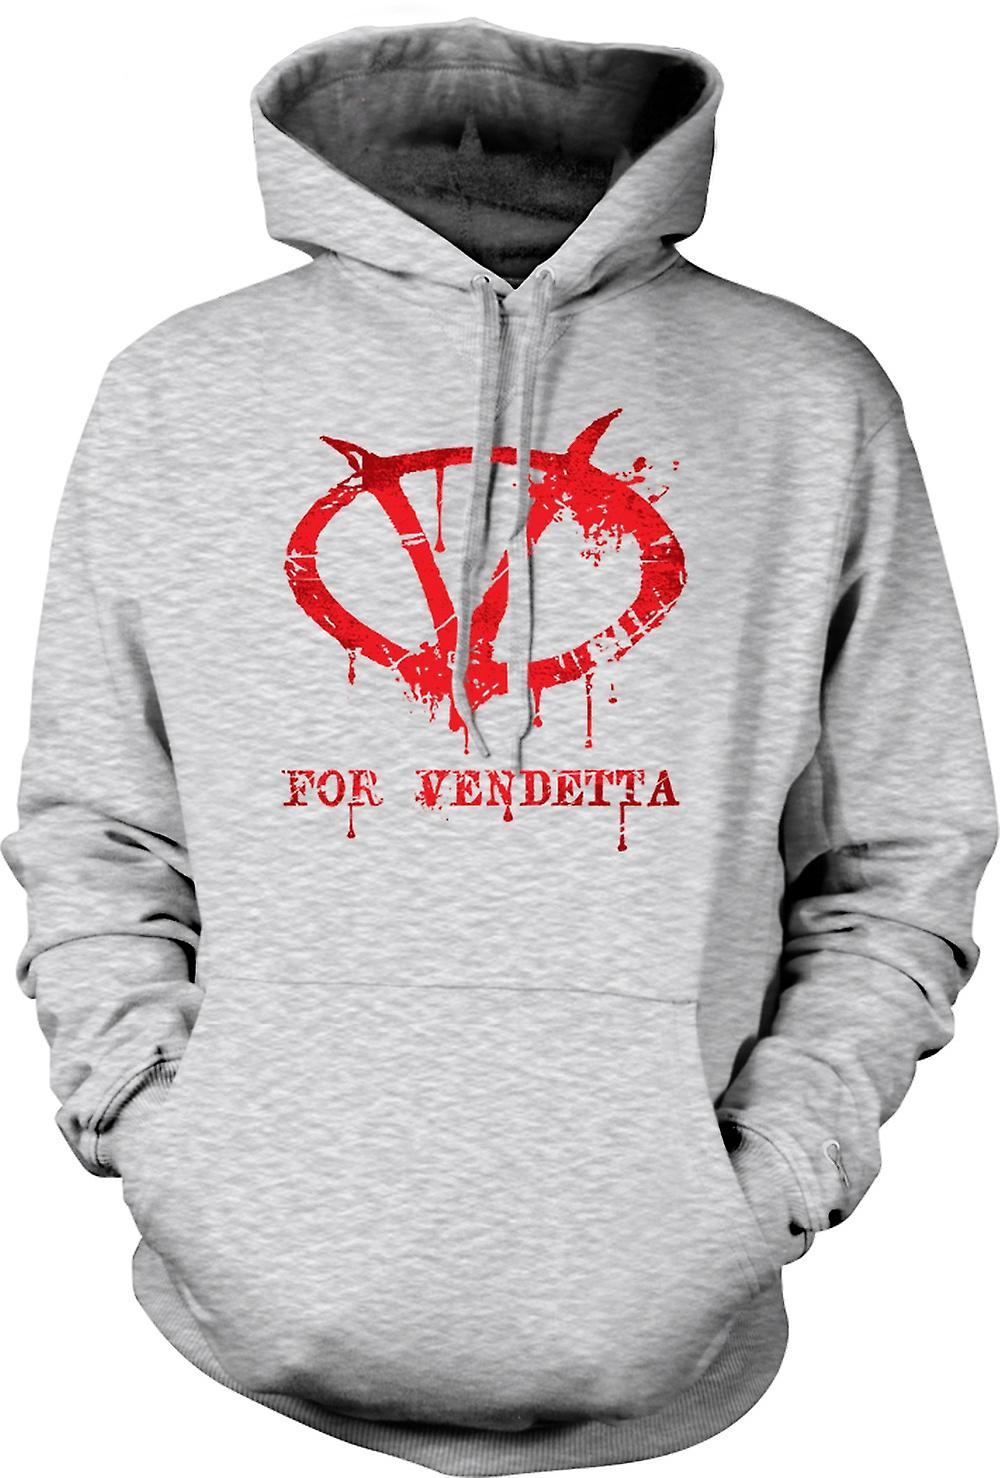 Mens Hoodie - V For Vendetta - Graffiti Logo